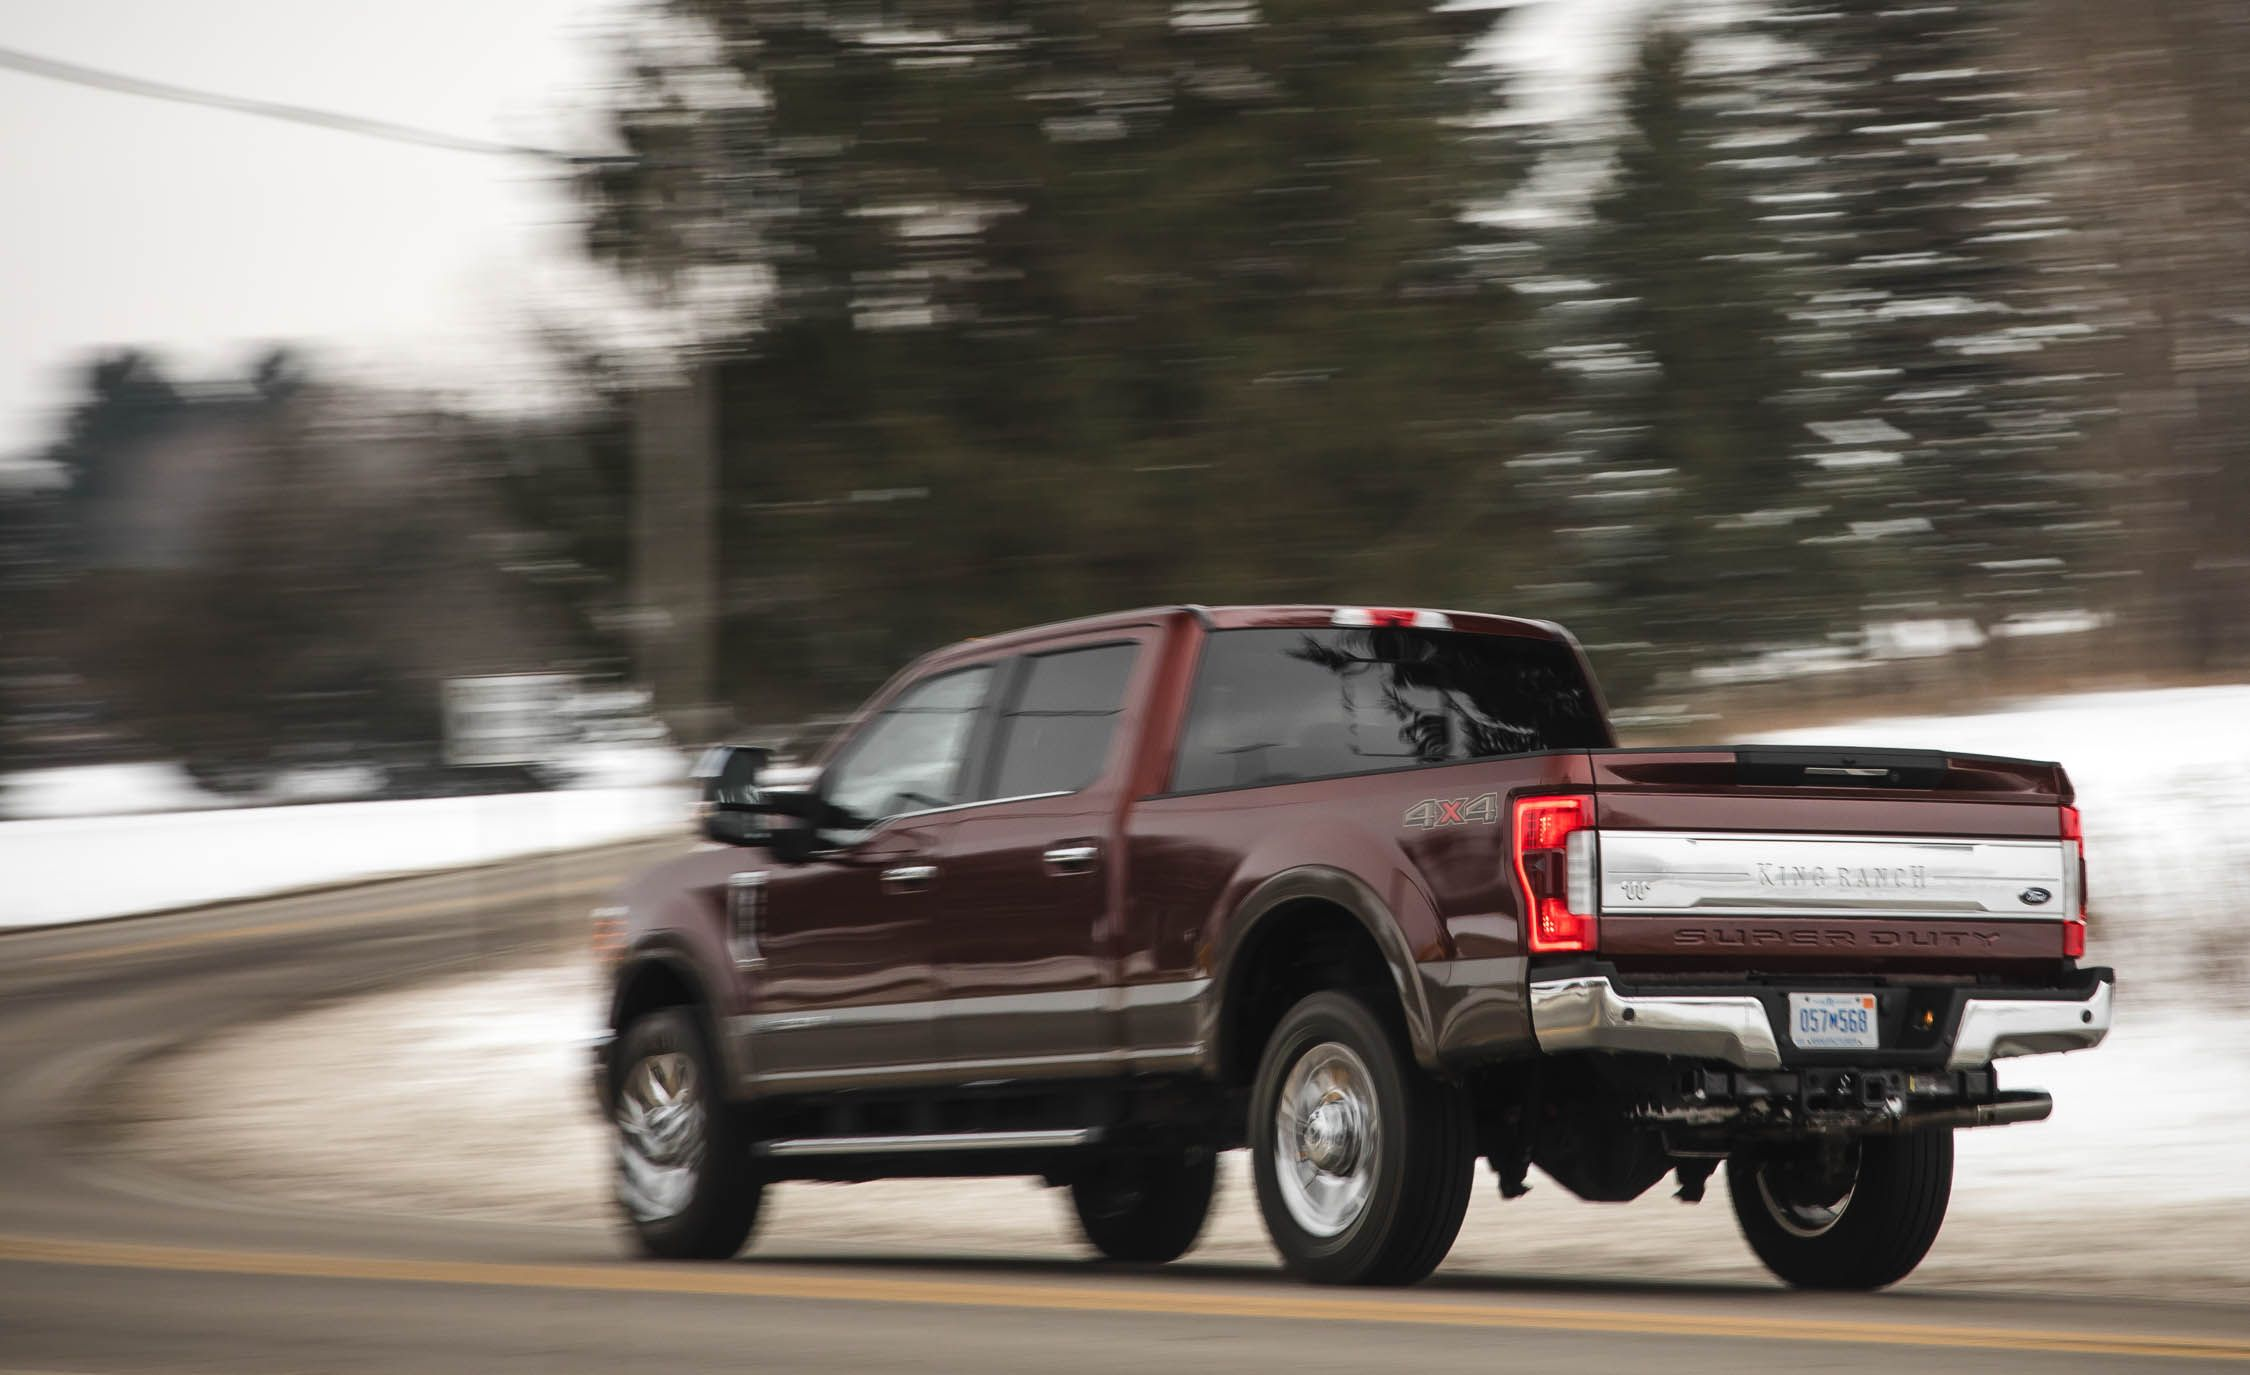 Ford f 350 super duty reviews ford f 350 super duty price photos and specs car and driver